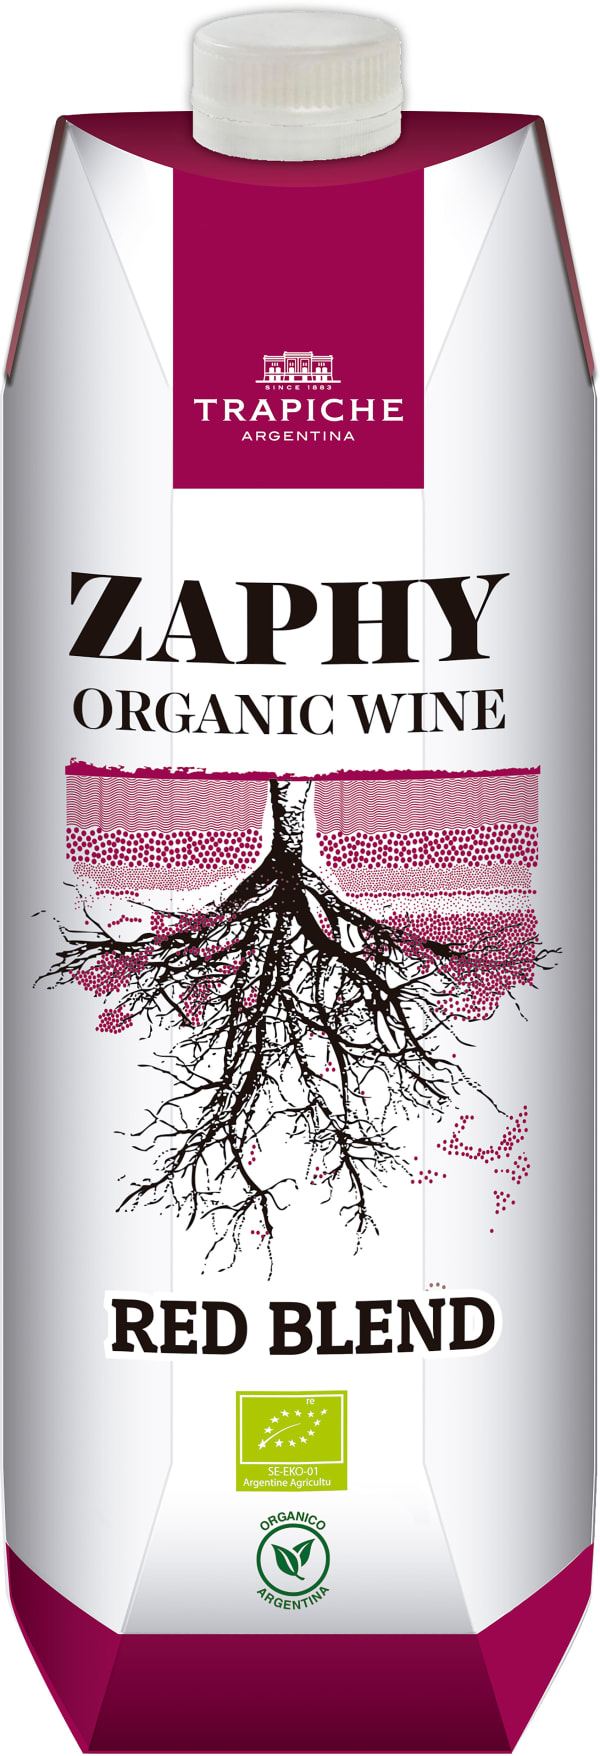 Trapiche Zaphy Organic red blend 2017 kartongförpackning